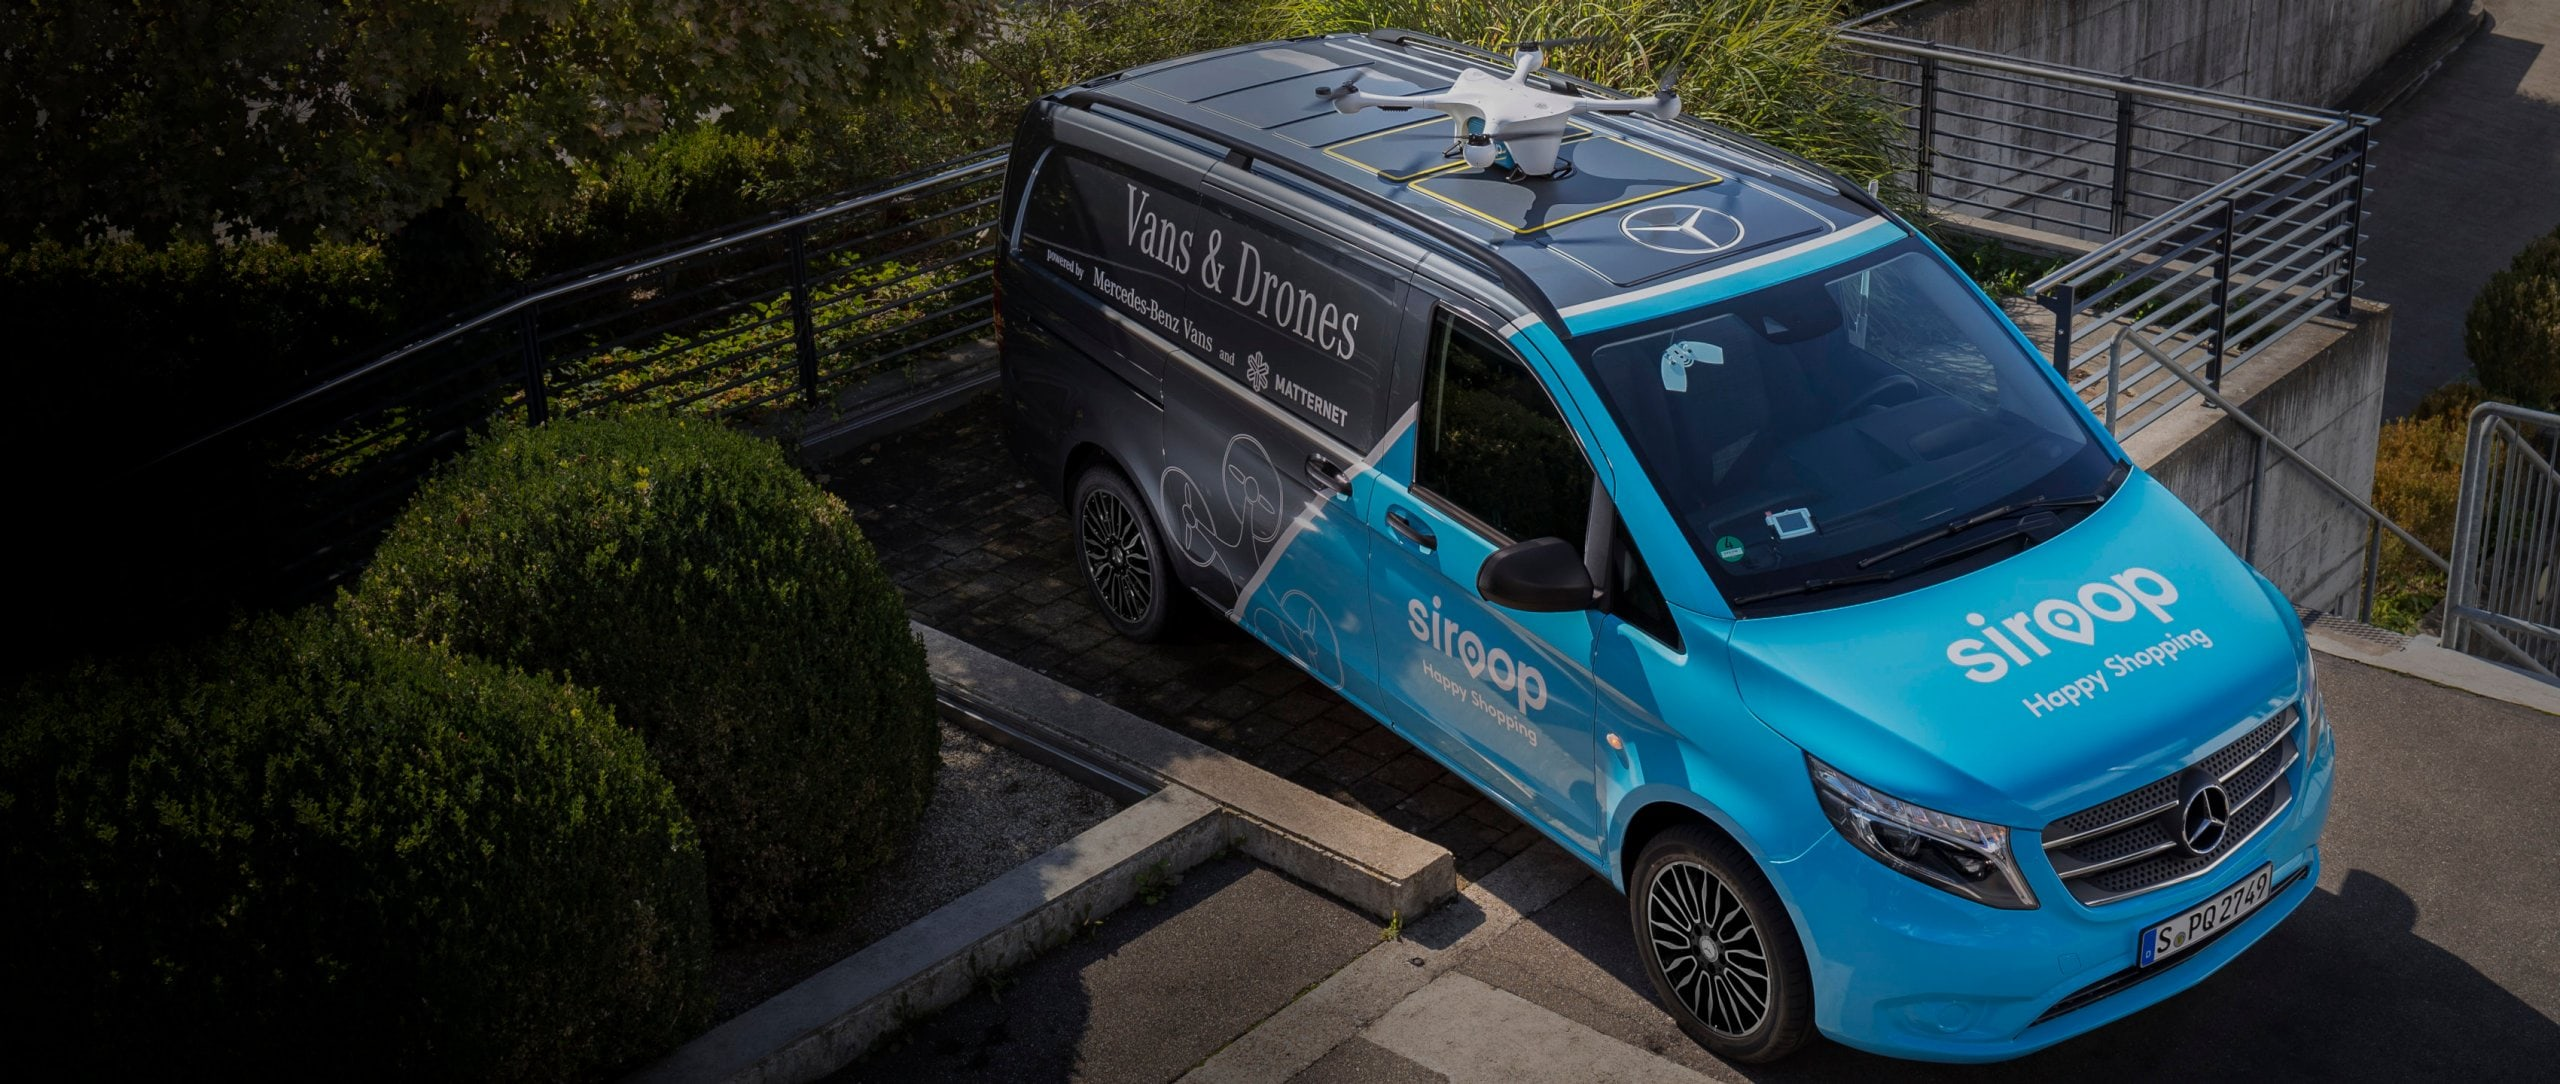 Mercedes-Benz Vans, Matternet and siroop start pilot project for on-demand delivery of e-commerce goods in Zurich.